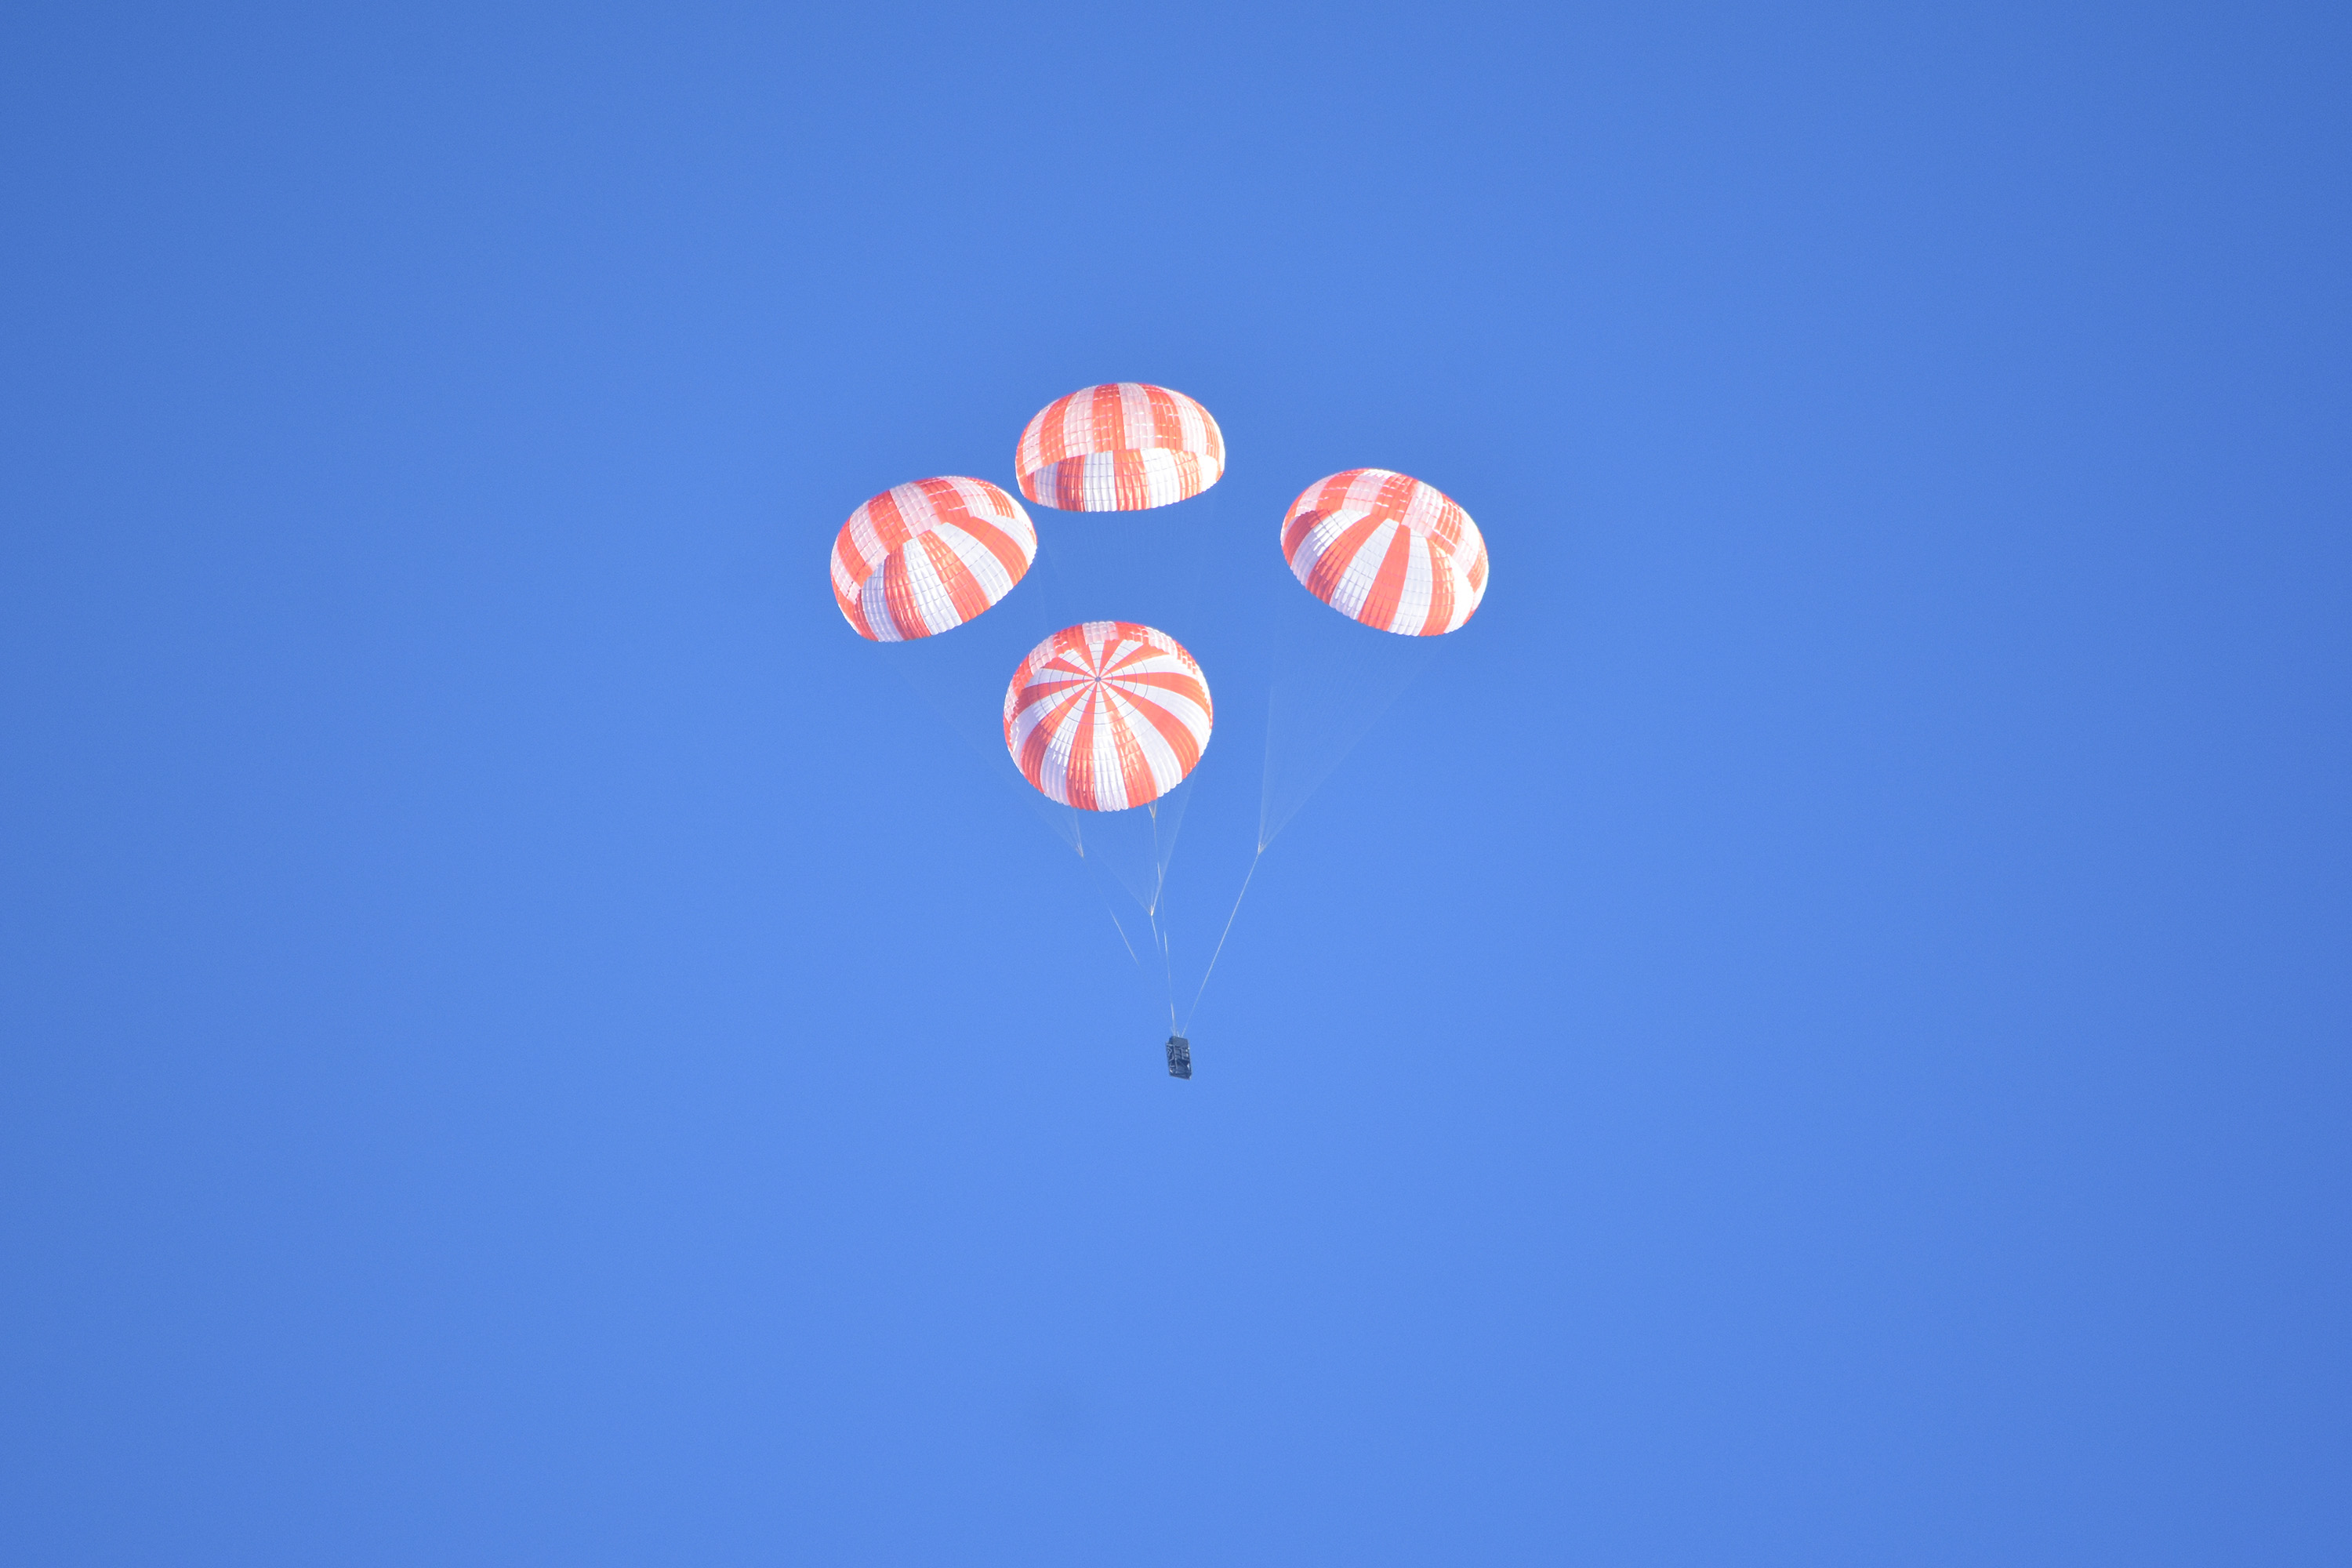 Dragon_parachute_test